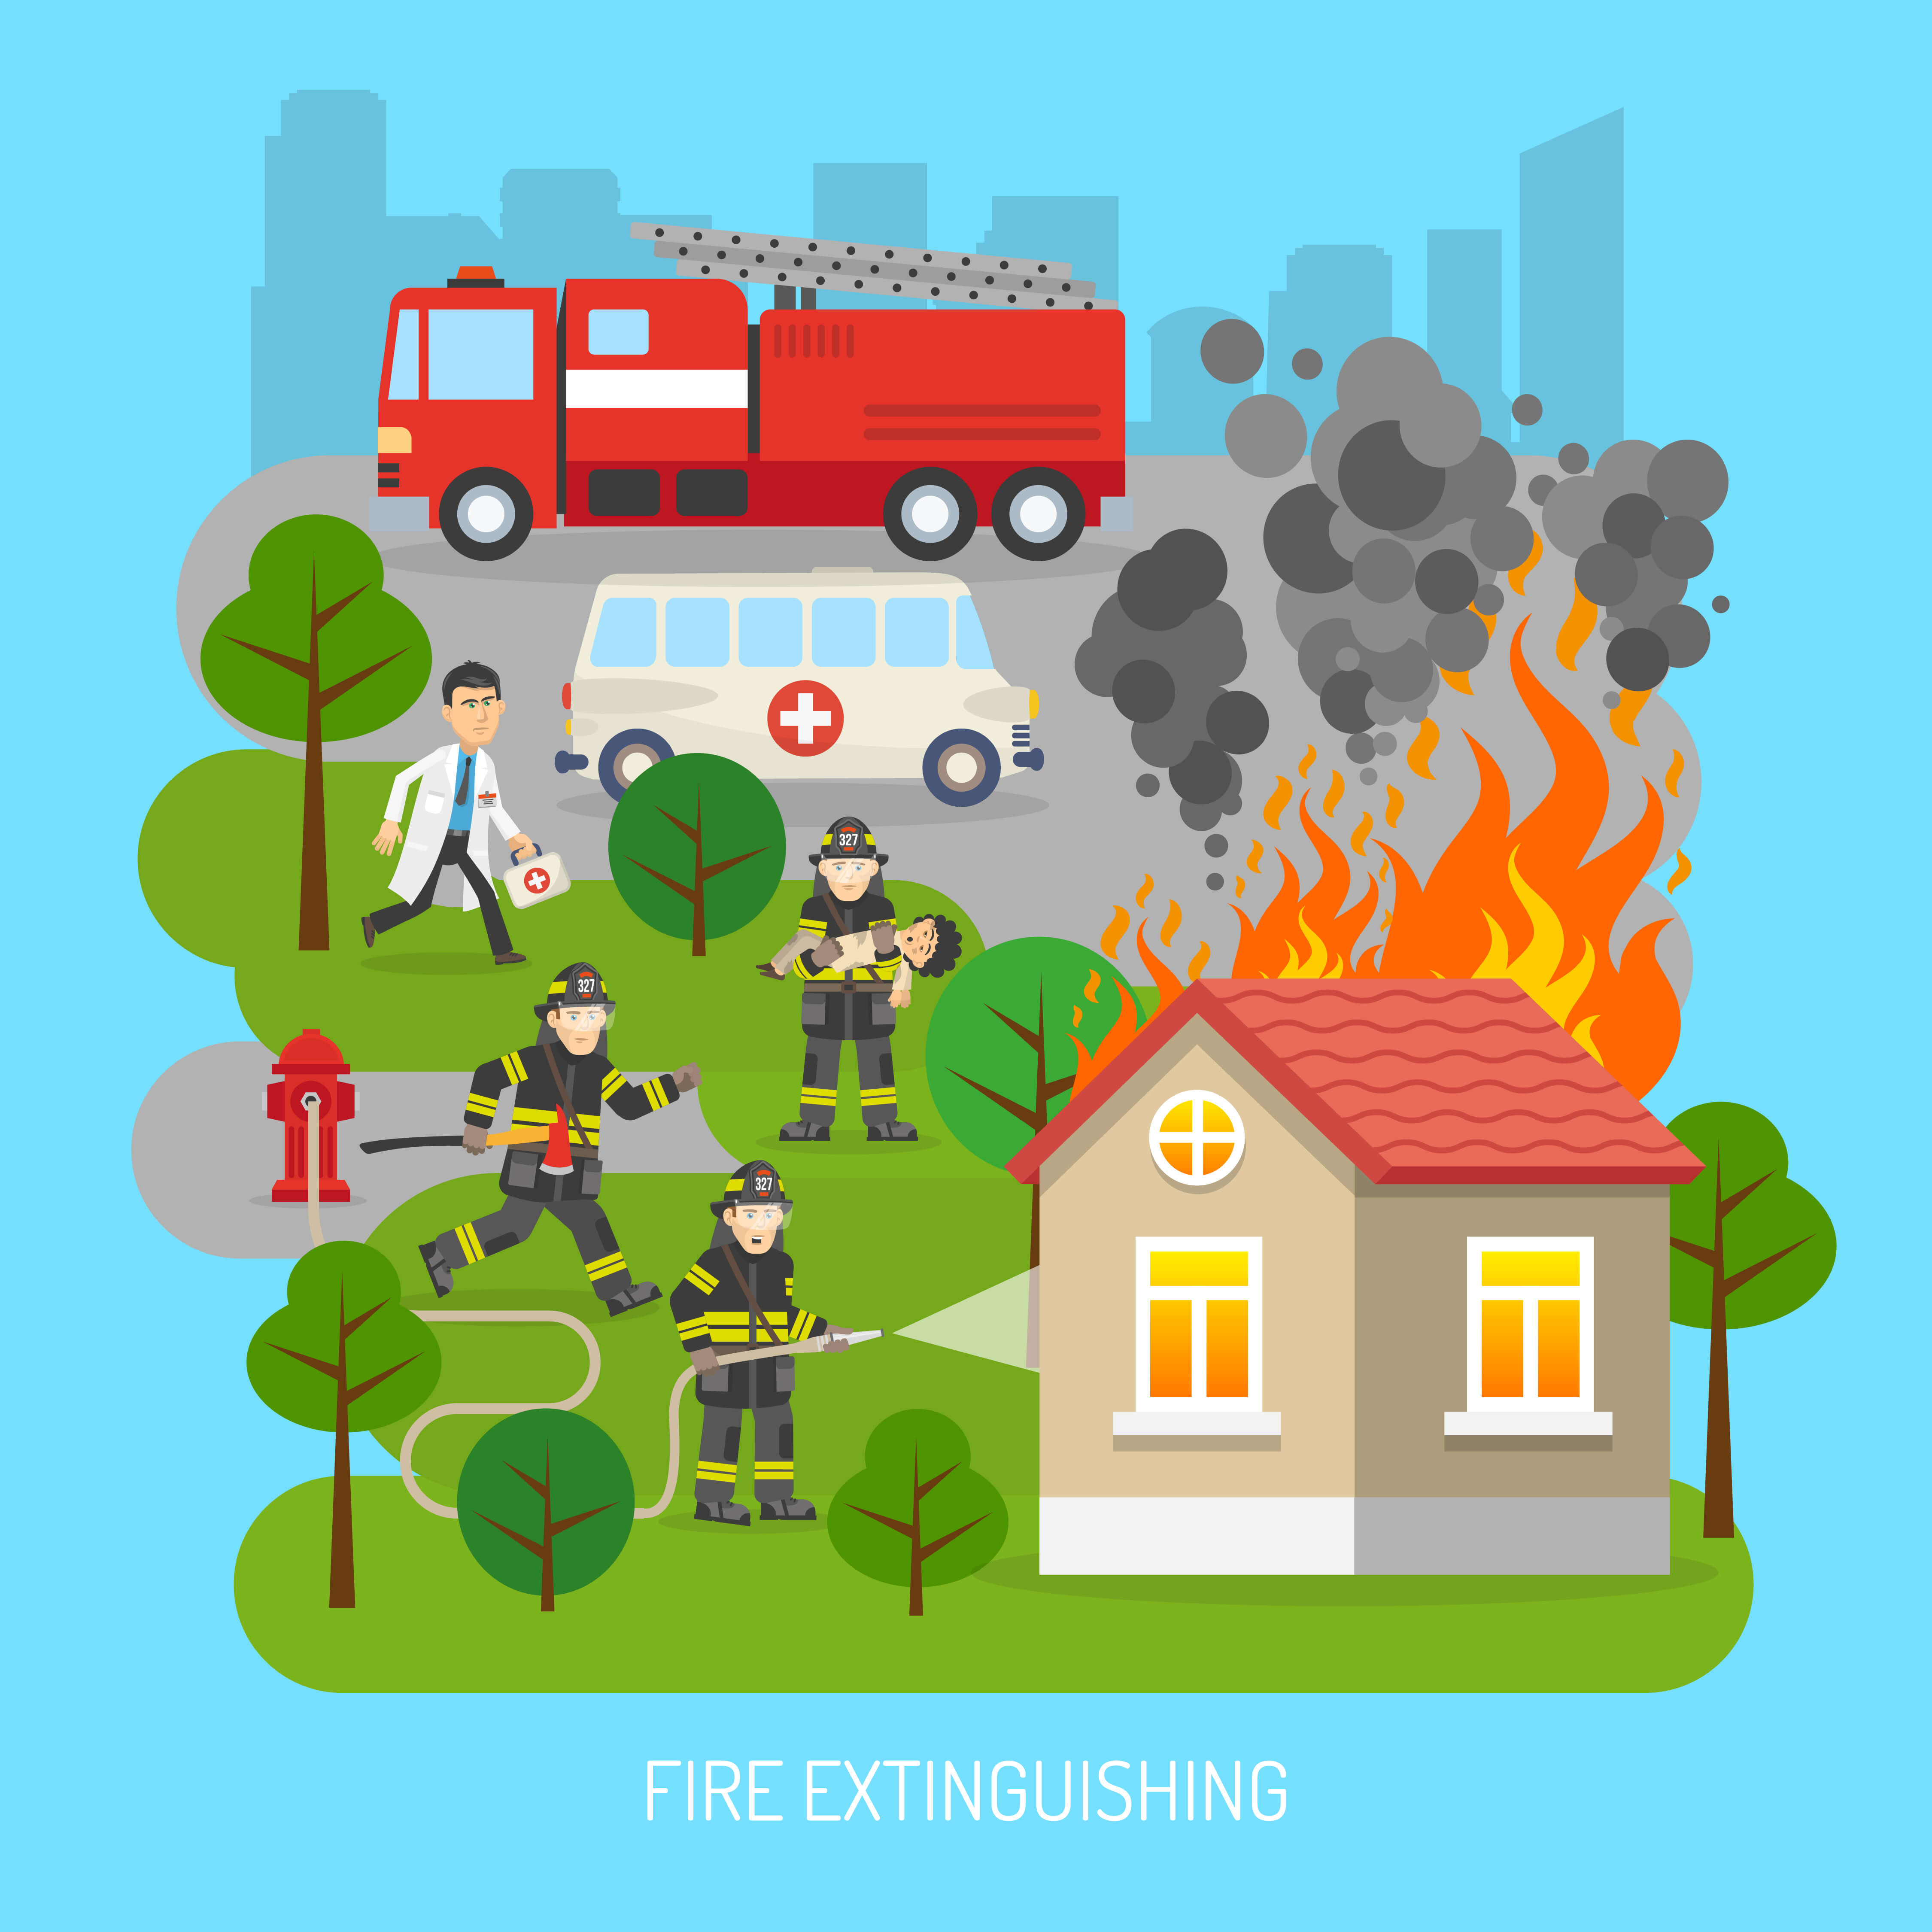 What to do in event of a Fire?